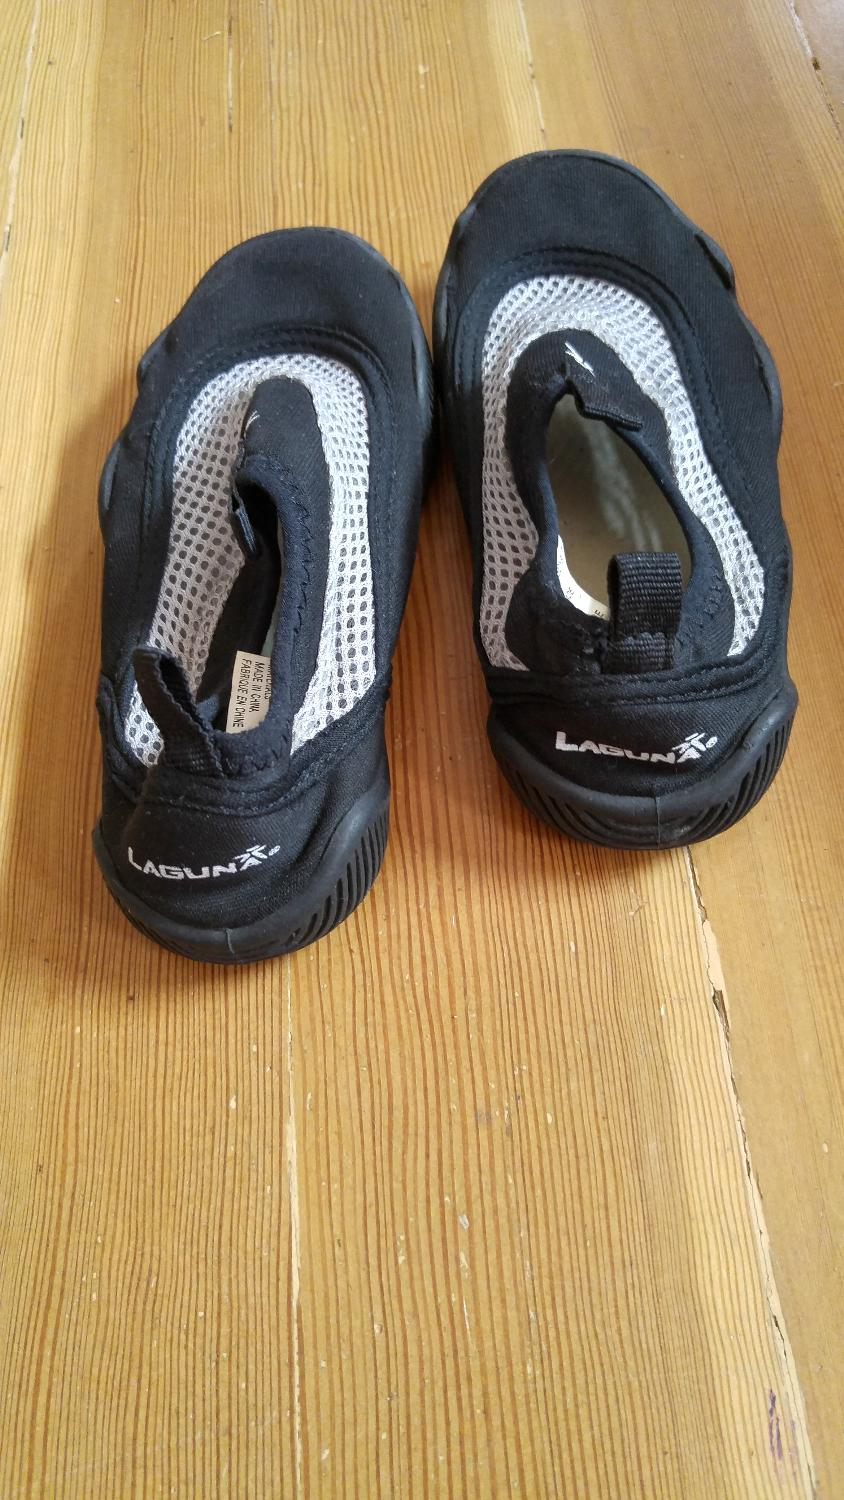 456a306e1043 Best Laguna Water Shoes Sz 10  2 Or Free With Any Purchase for sale in  Victoria